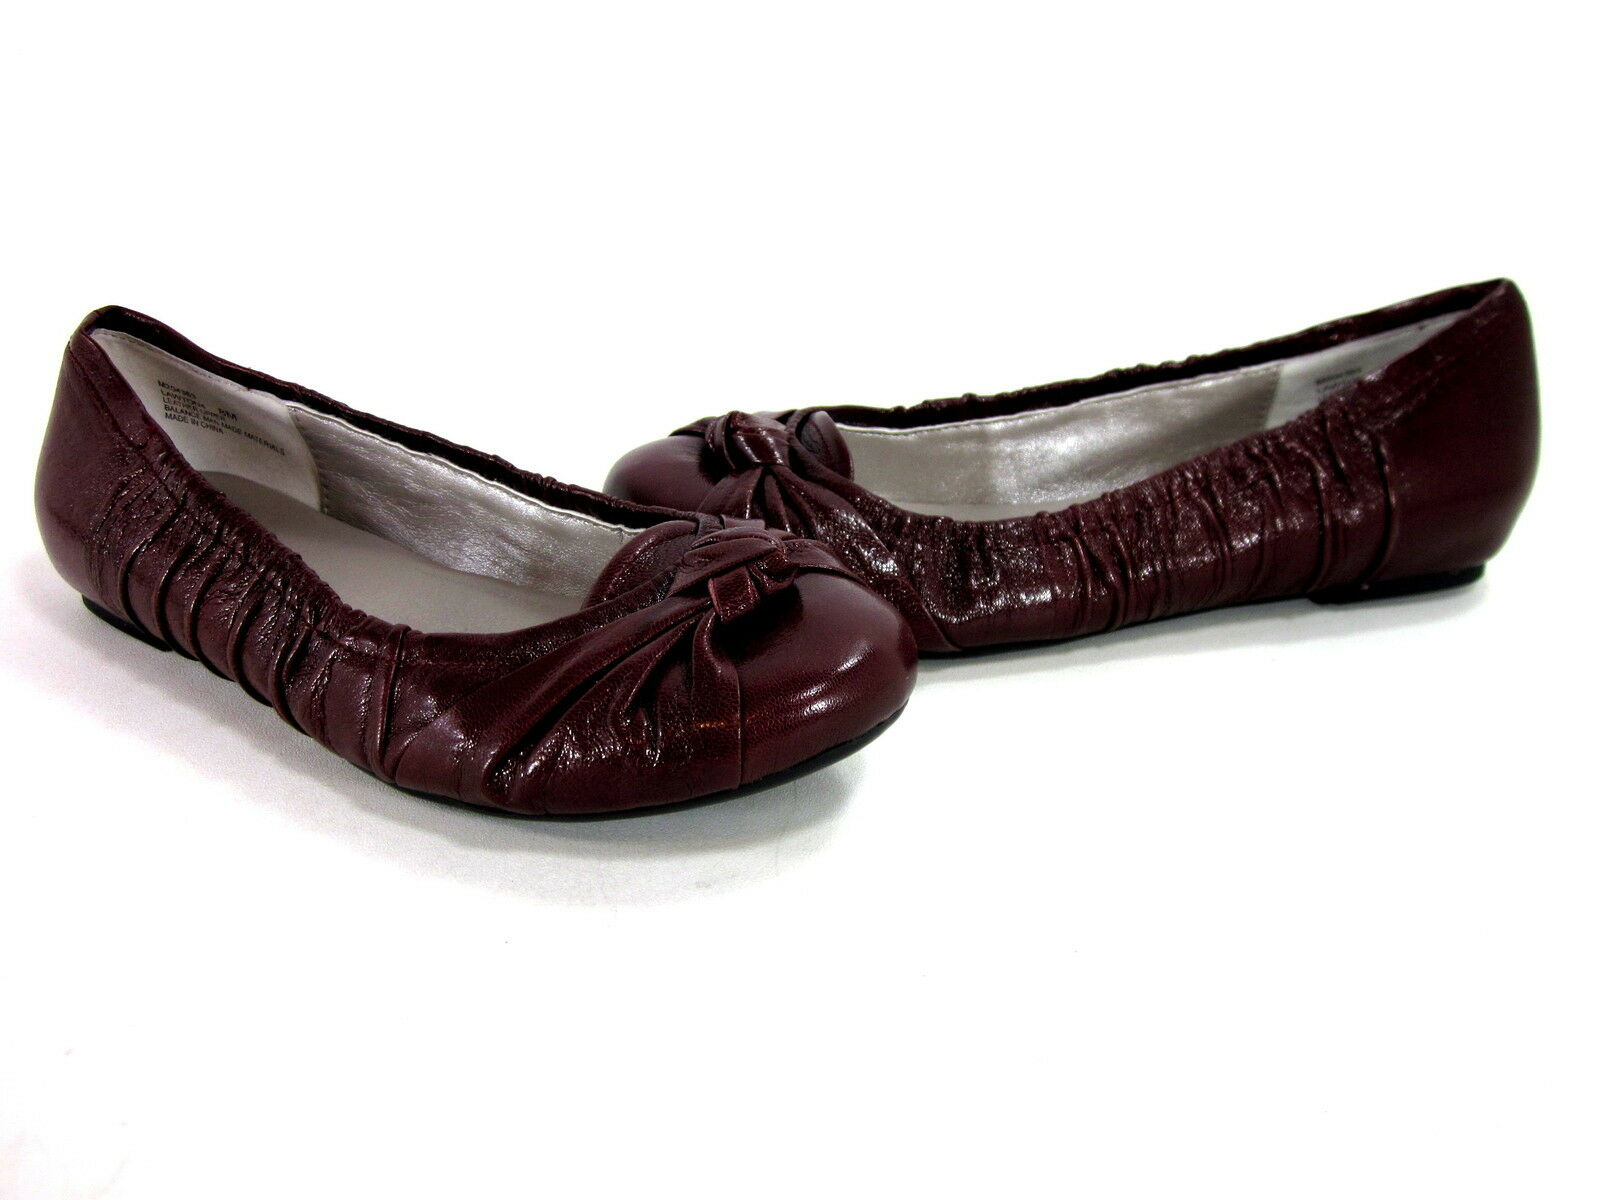 ME TOO LAWTON WOMEN'S COMFORT BALLET FLATS BURGUNDY LEATHER US SIZE 7.5 MEDIUM